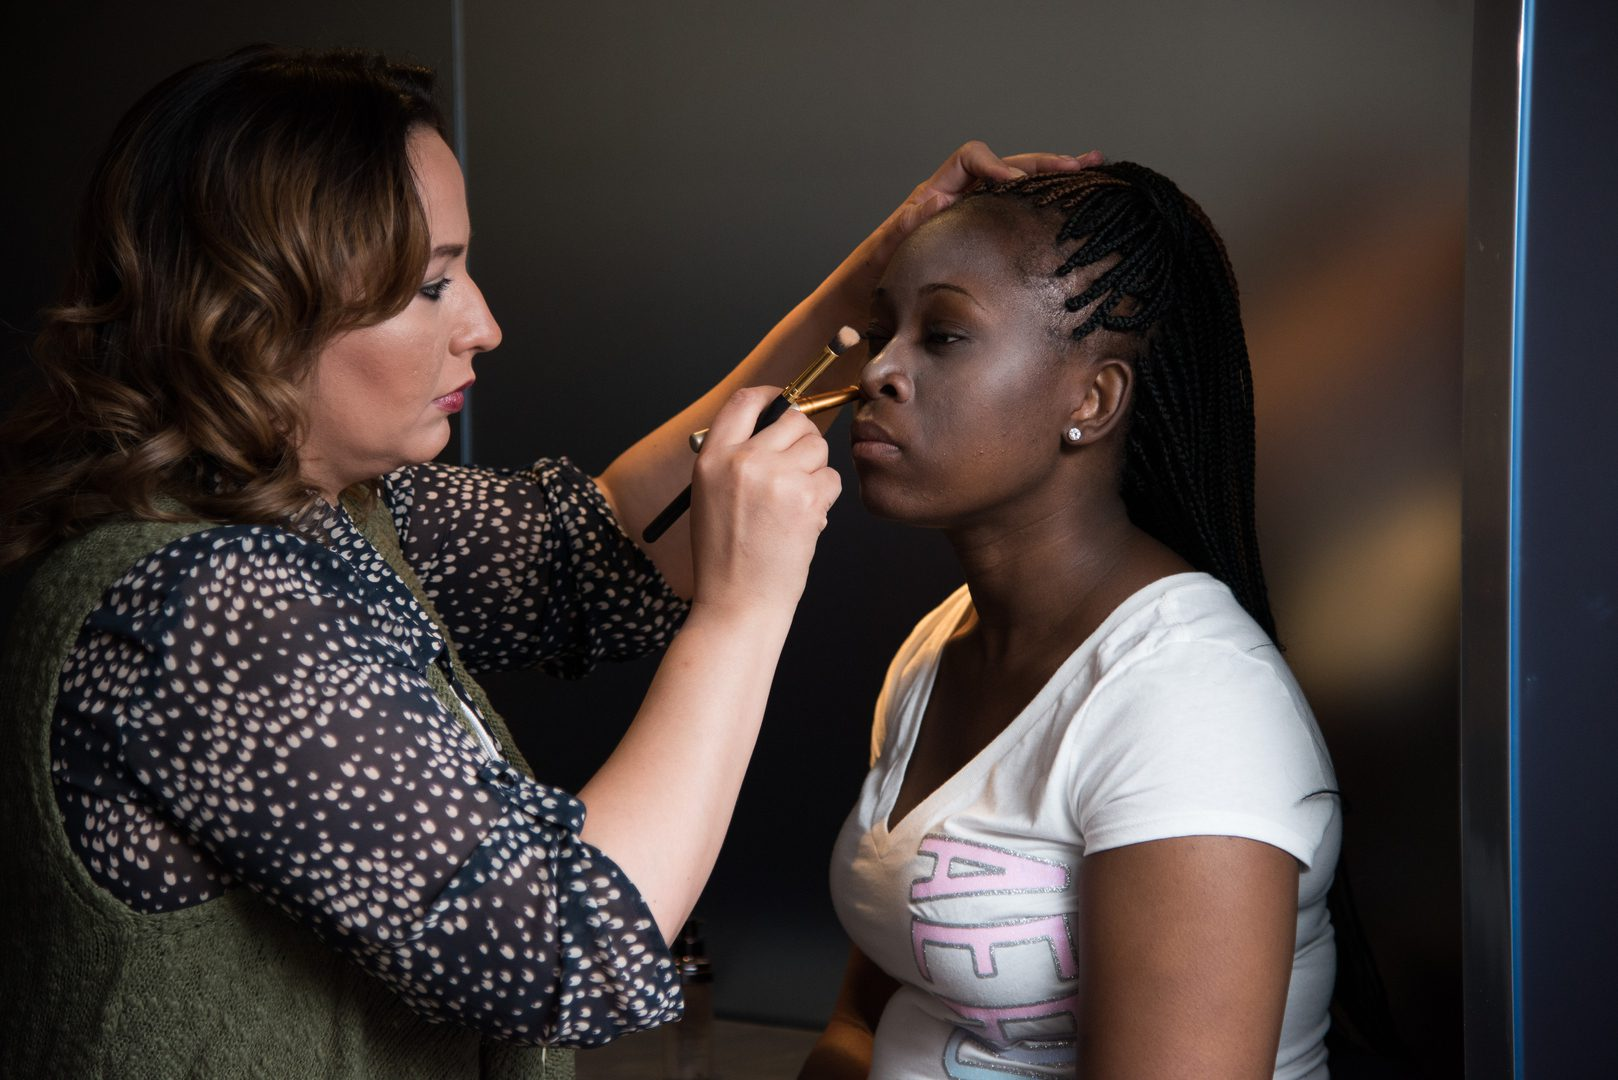 A woman putting makeup on another woman